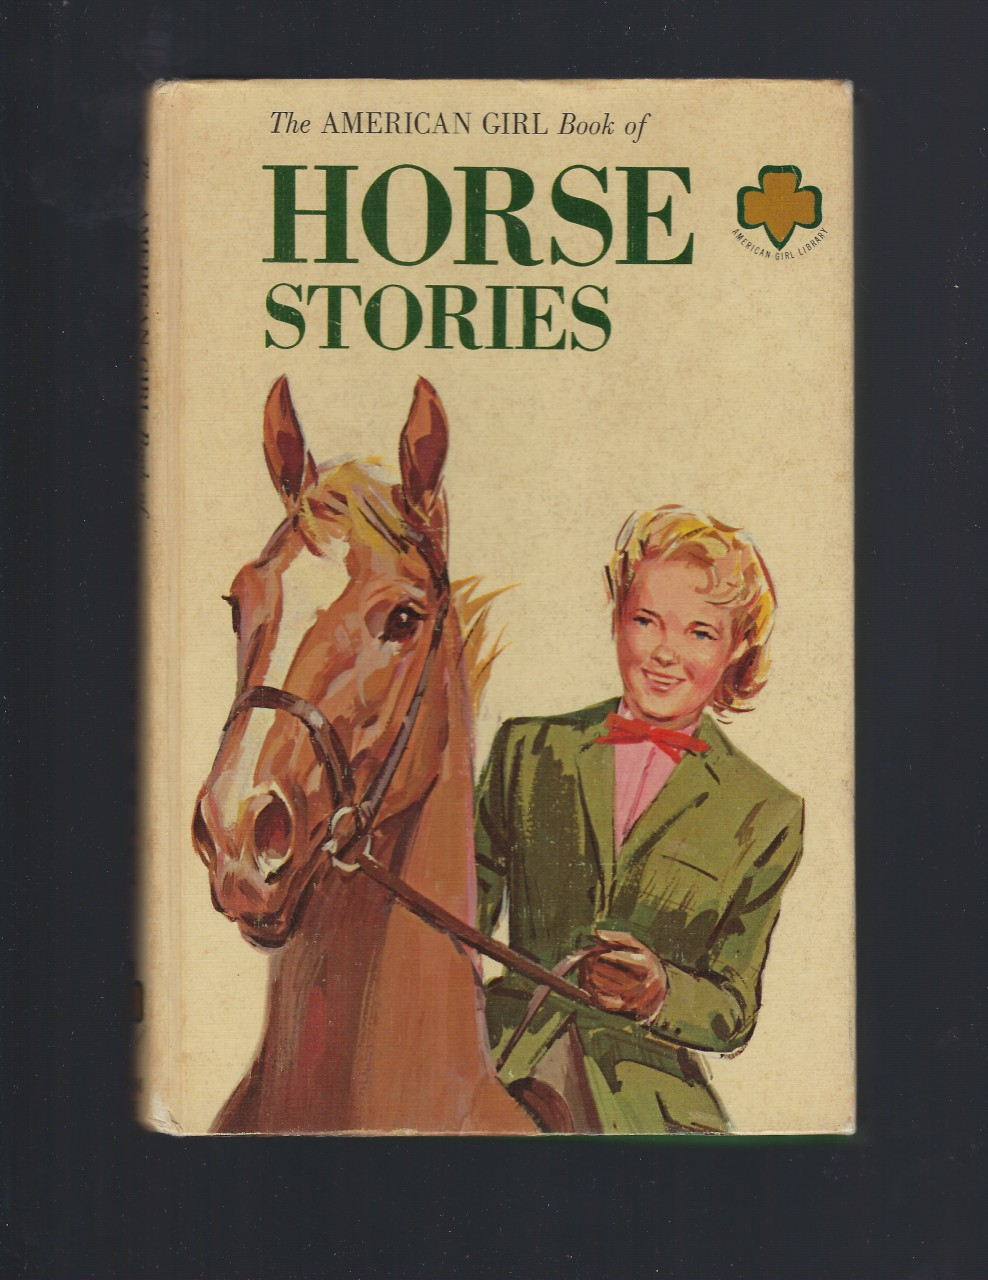 The American Girl Book of Horse Stories Girl Scouts HB, American Girl Librar